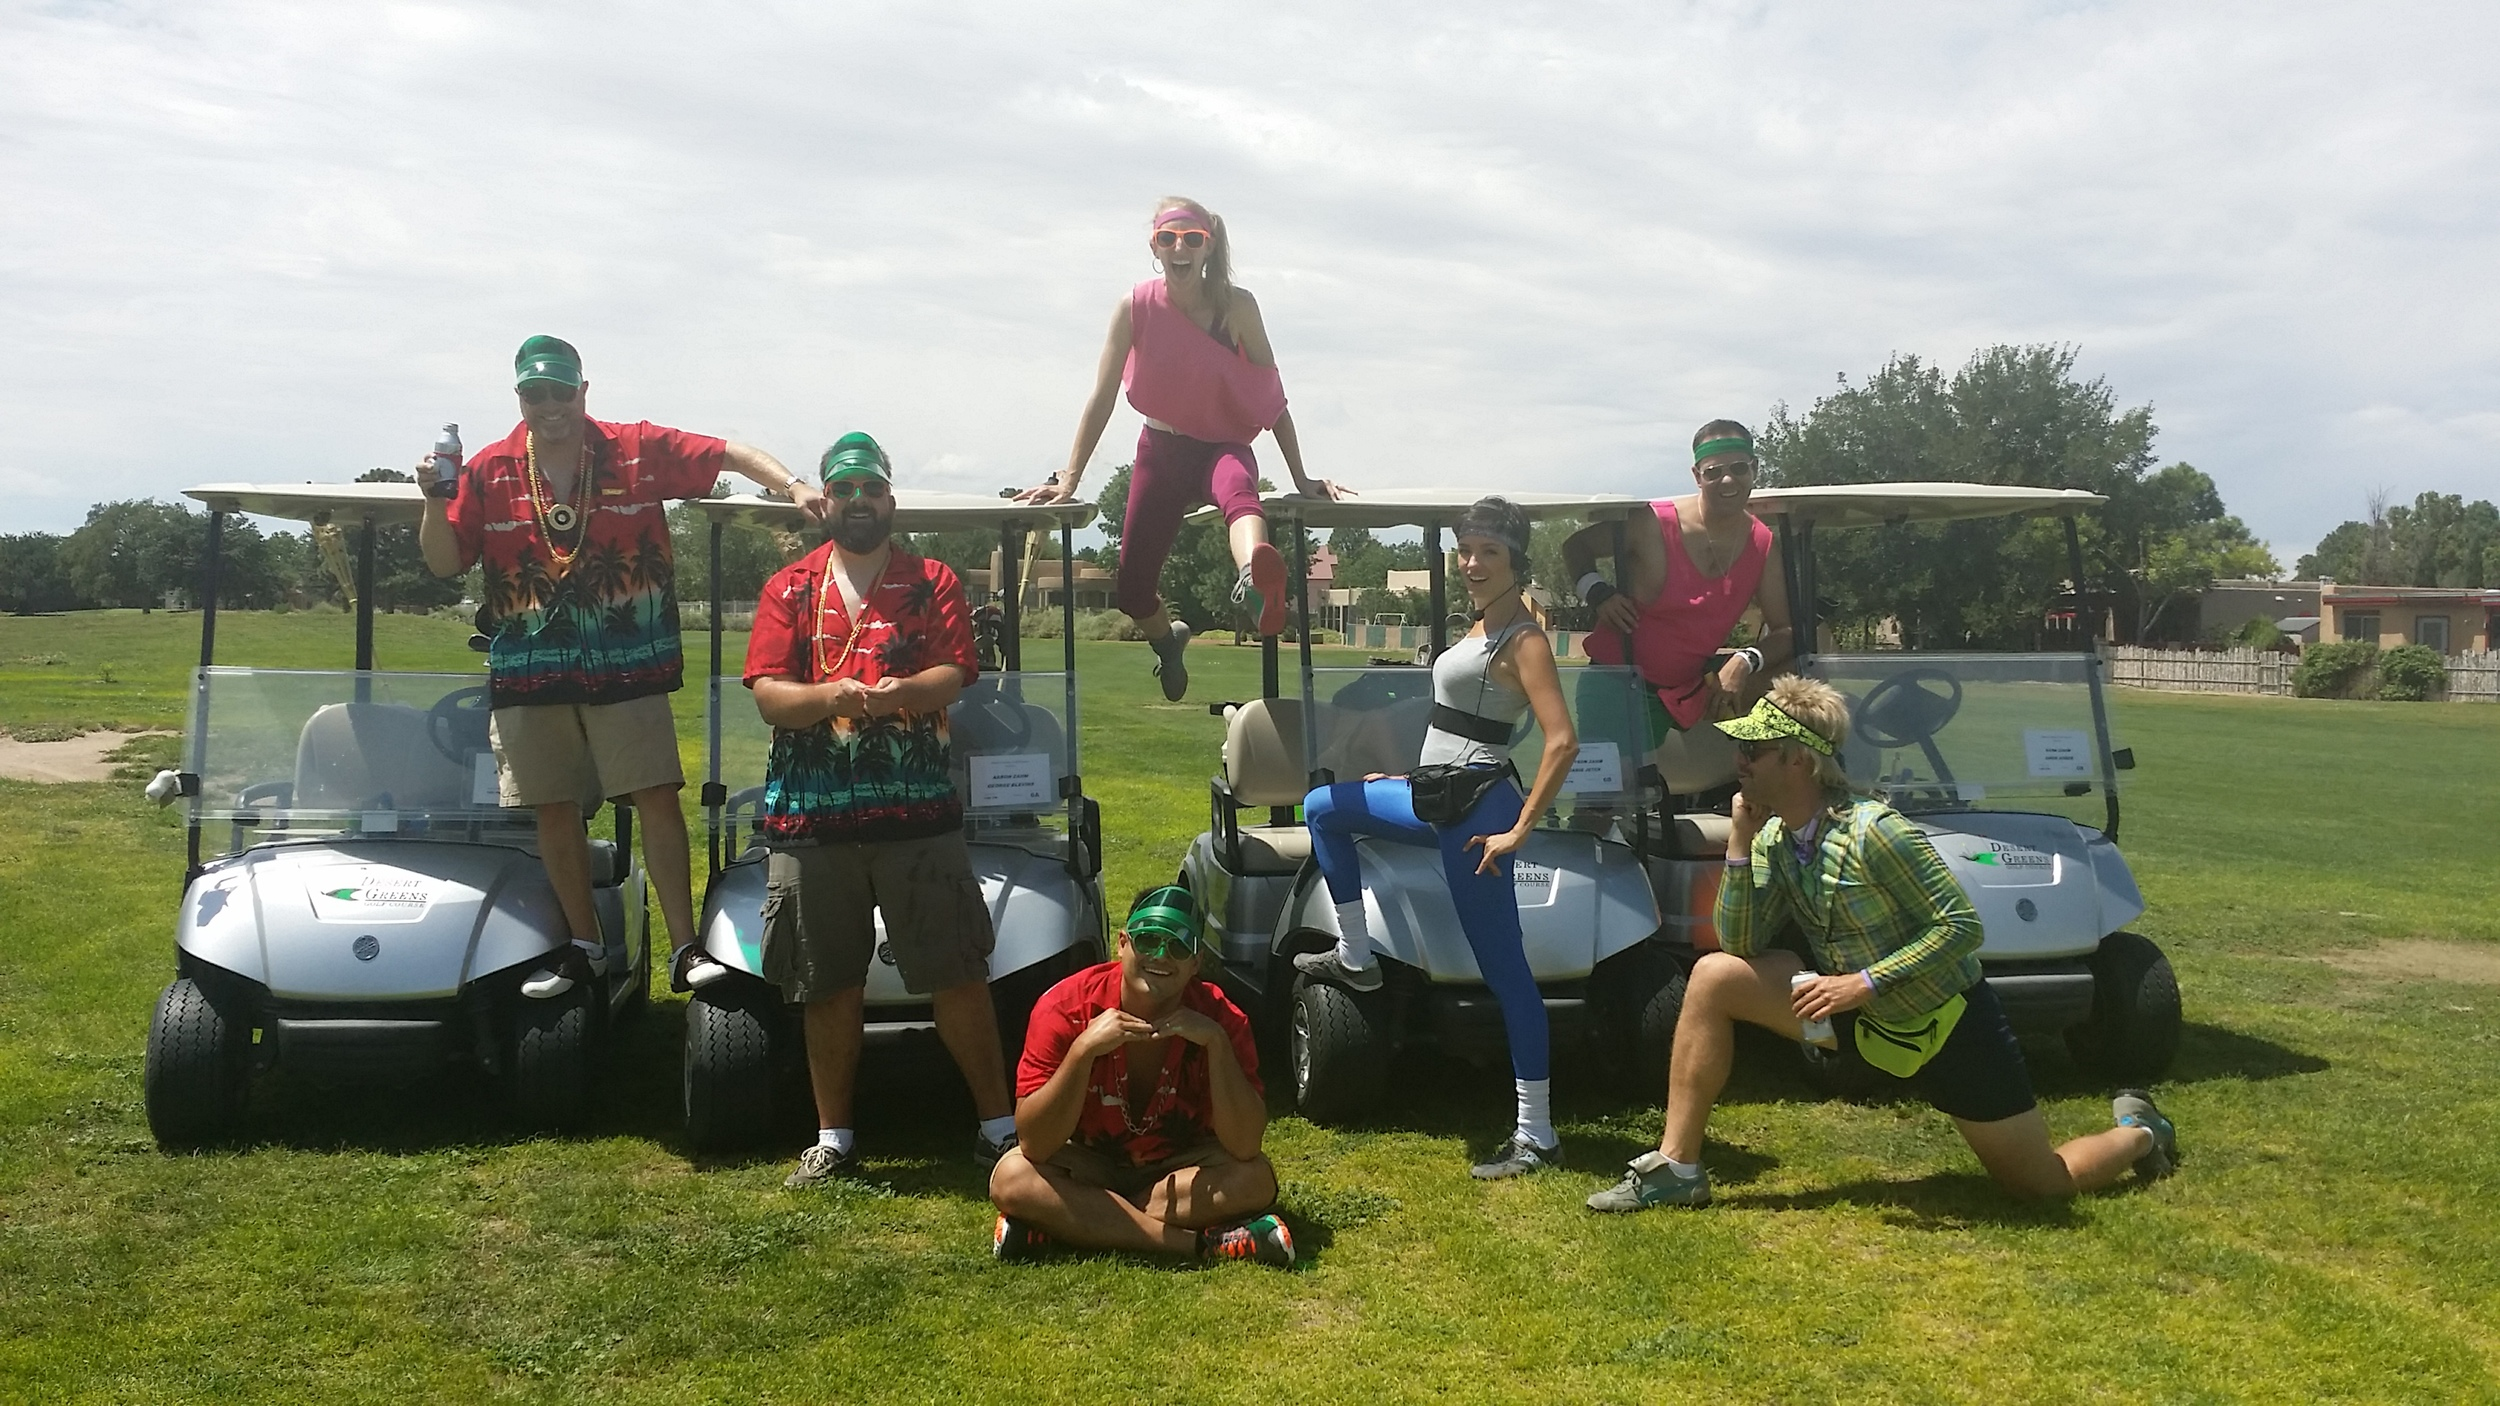 """Team """"Swingers"""" and Team """"Putts of Steel"""" take a break from golf. Putts of Steel took home the trophy for best costume."""